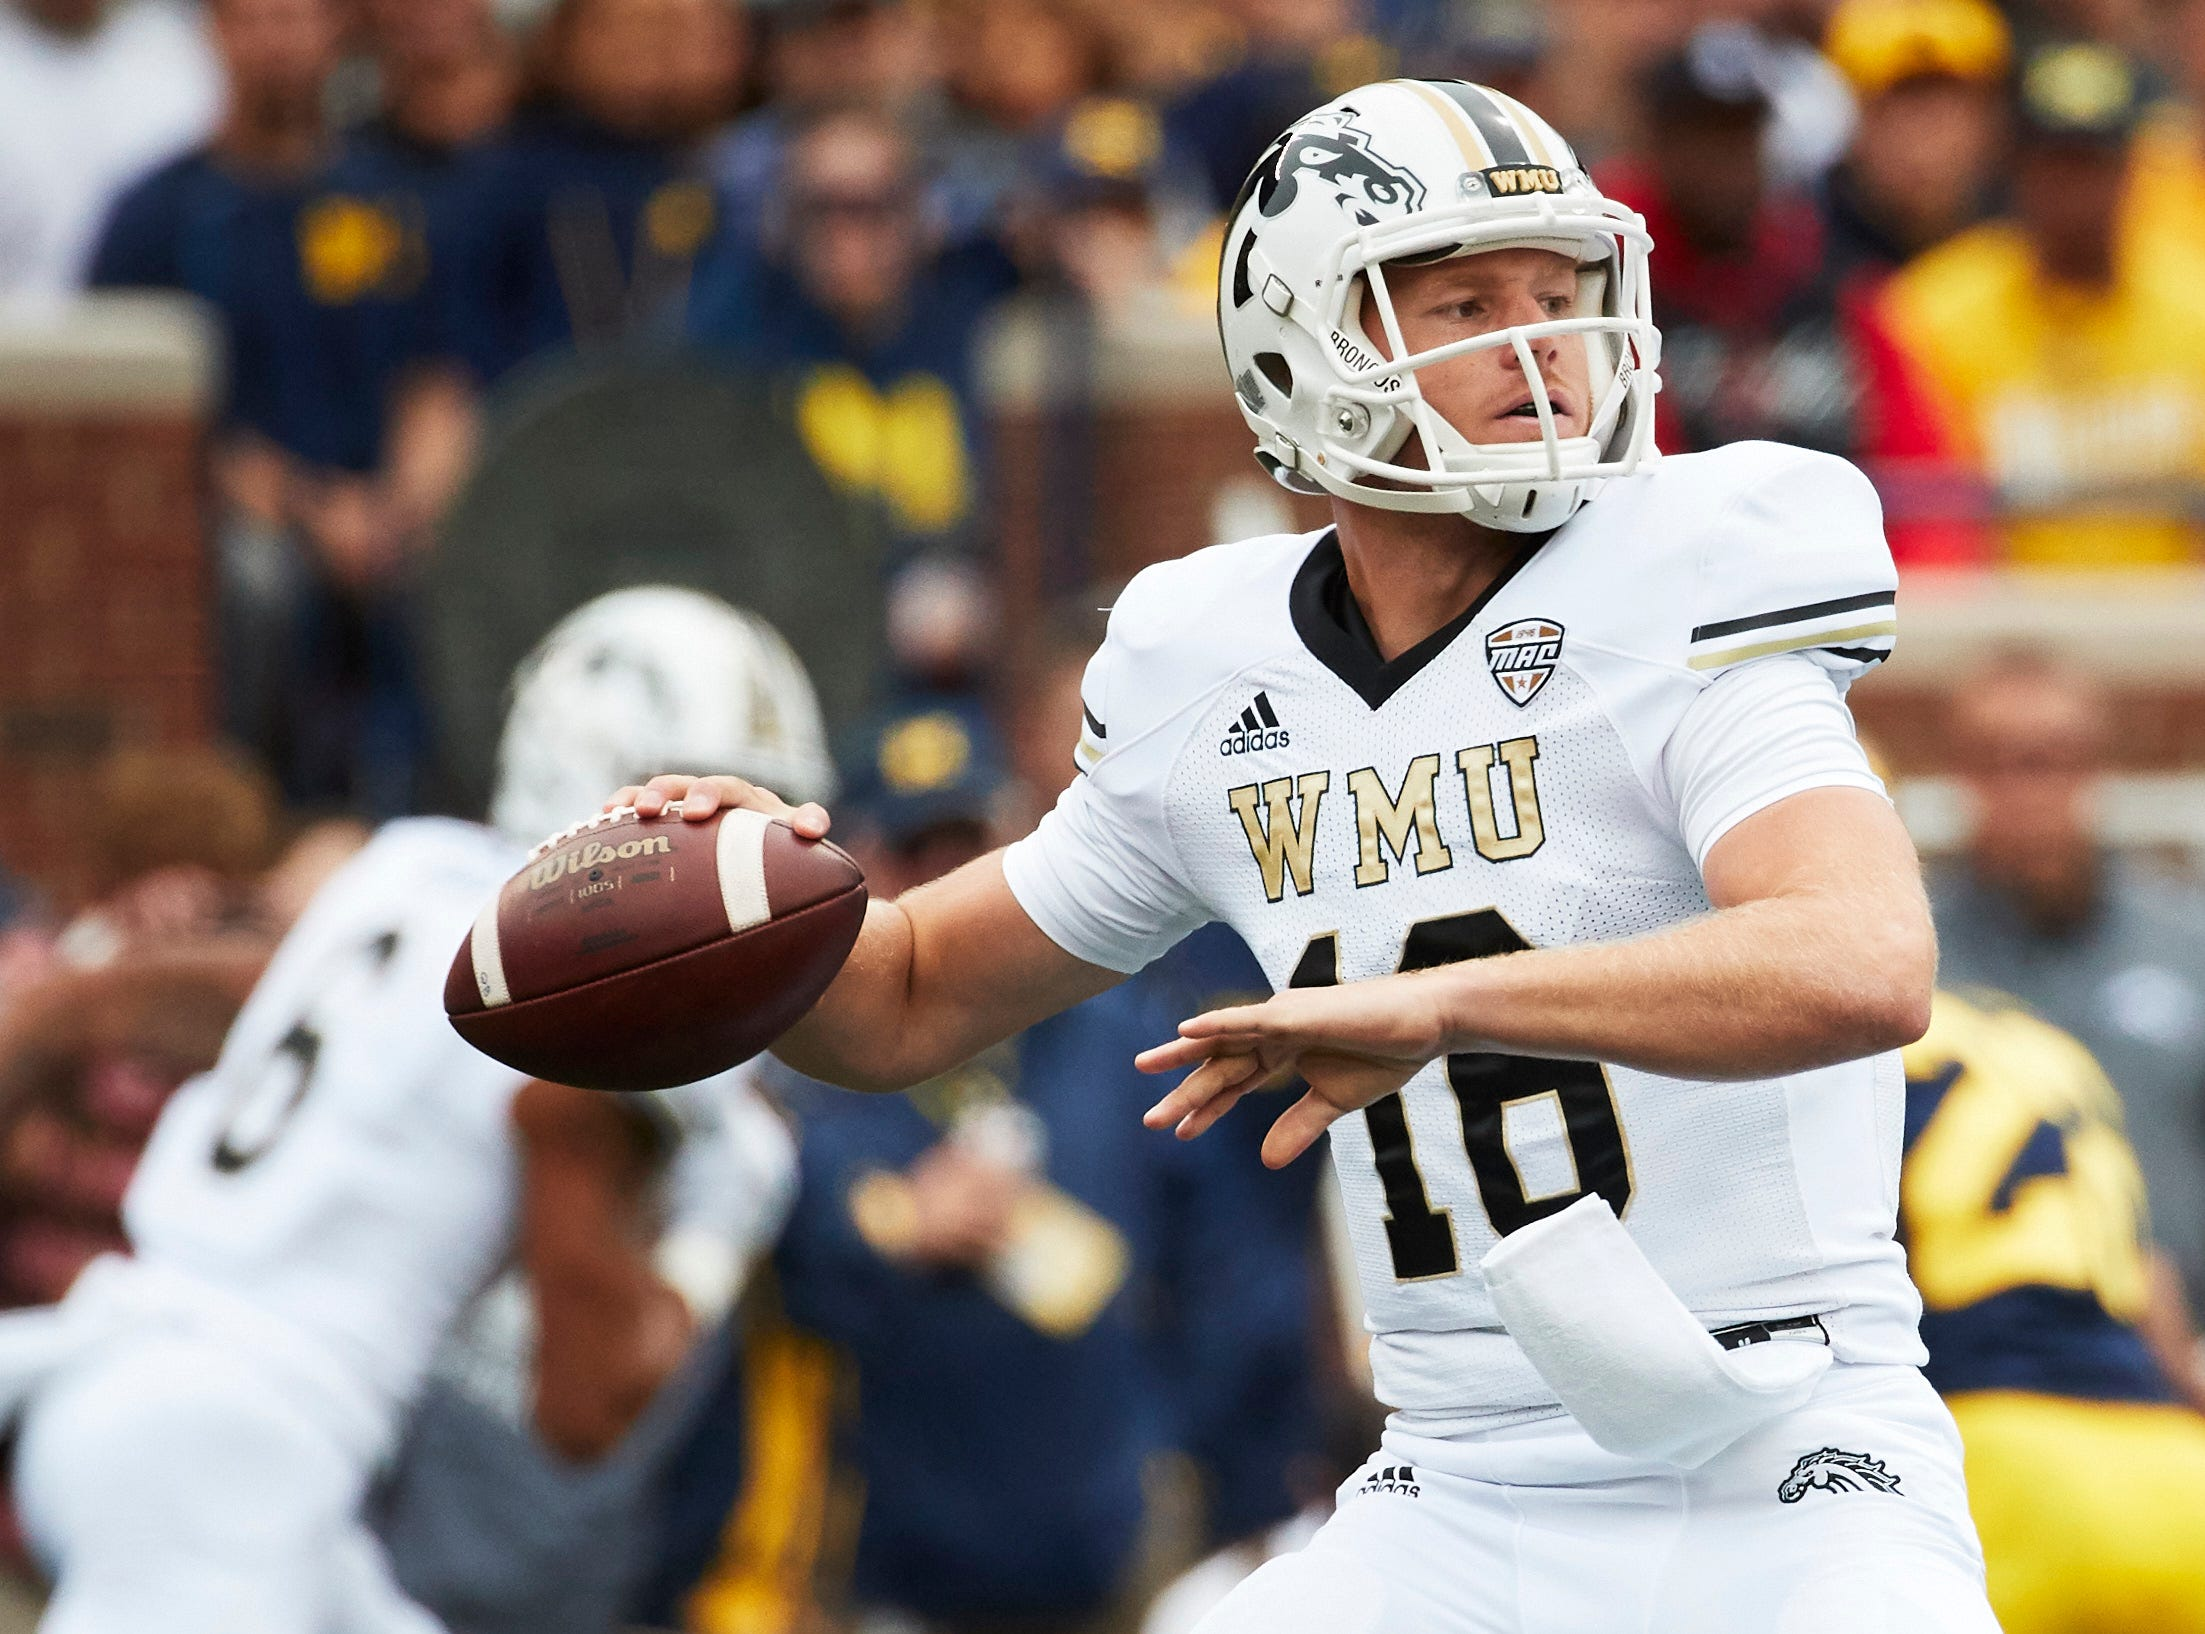 Sep 8, 2018; Ann Arbor, MI, USA; Western Michigan Broncos quarterback Jon Wassink (16) passes in the first half against the Michigan Wolverines at Michigan Stadium. Mandatory Credit: Rick Osentoski-USA TODAY Sports